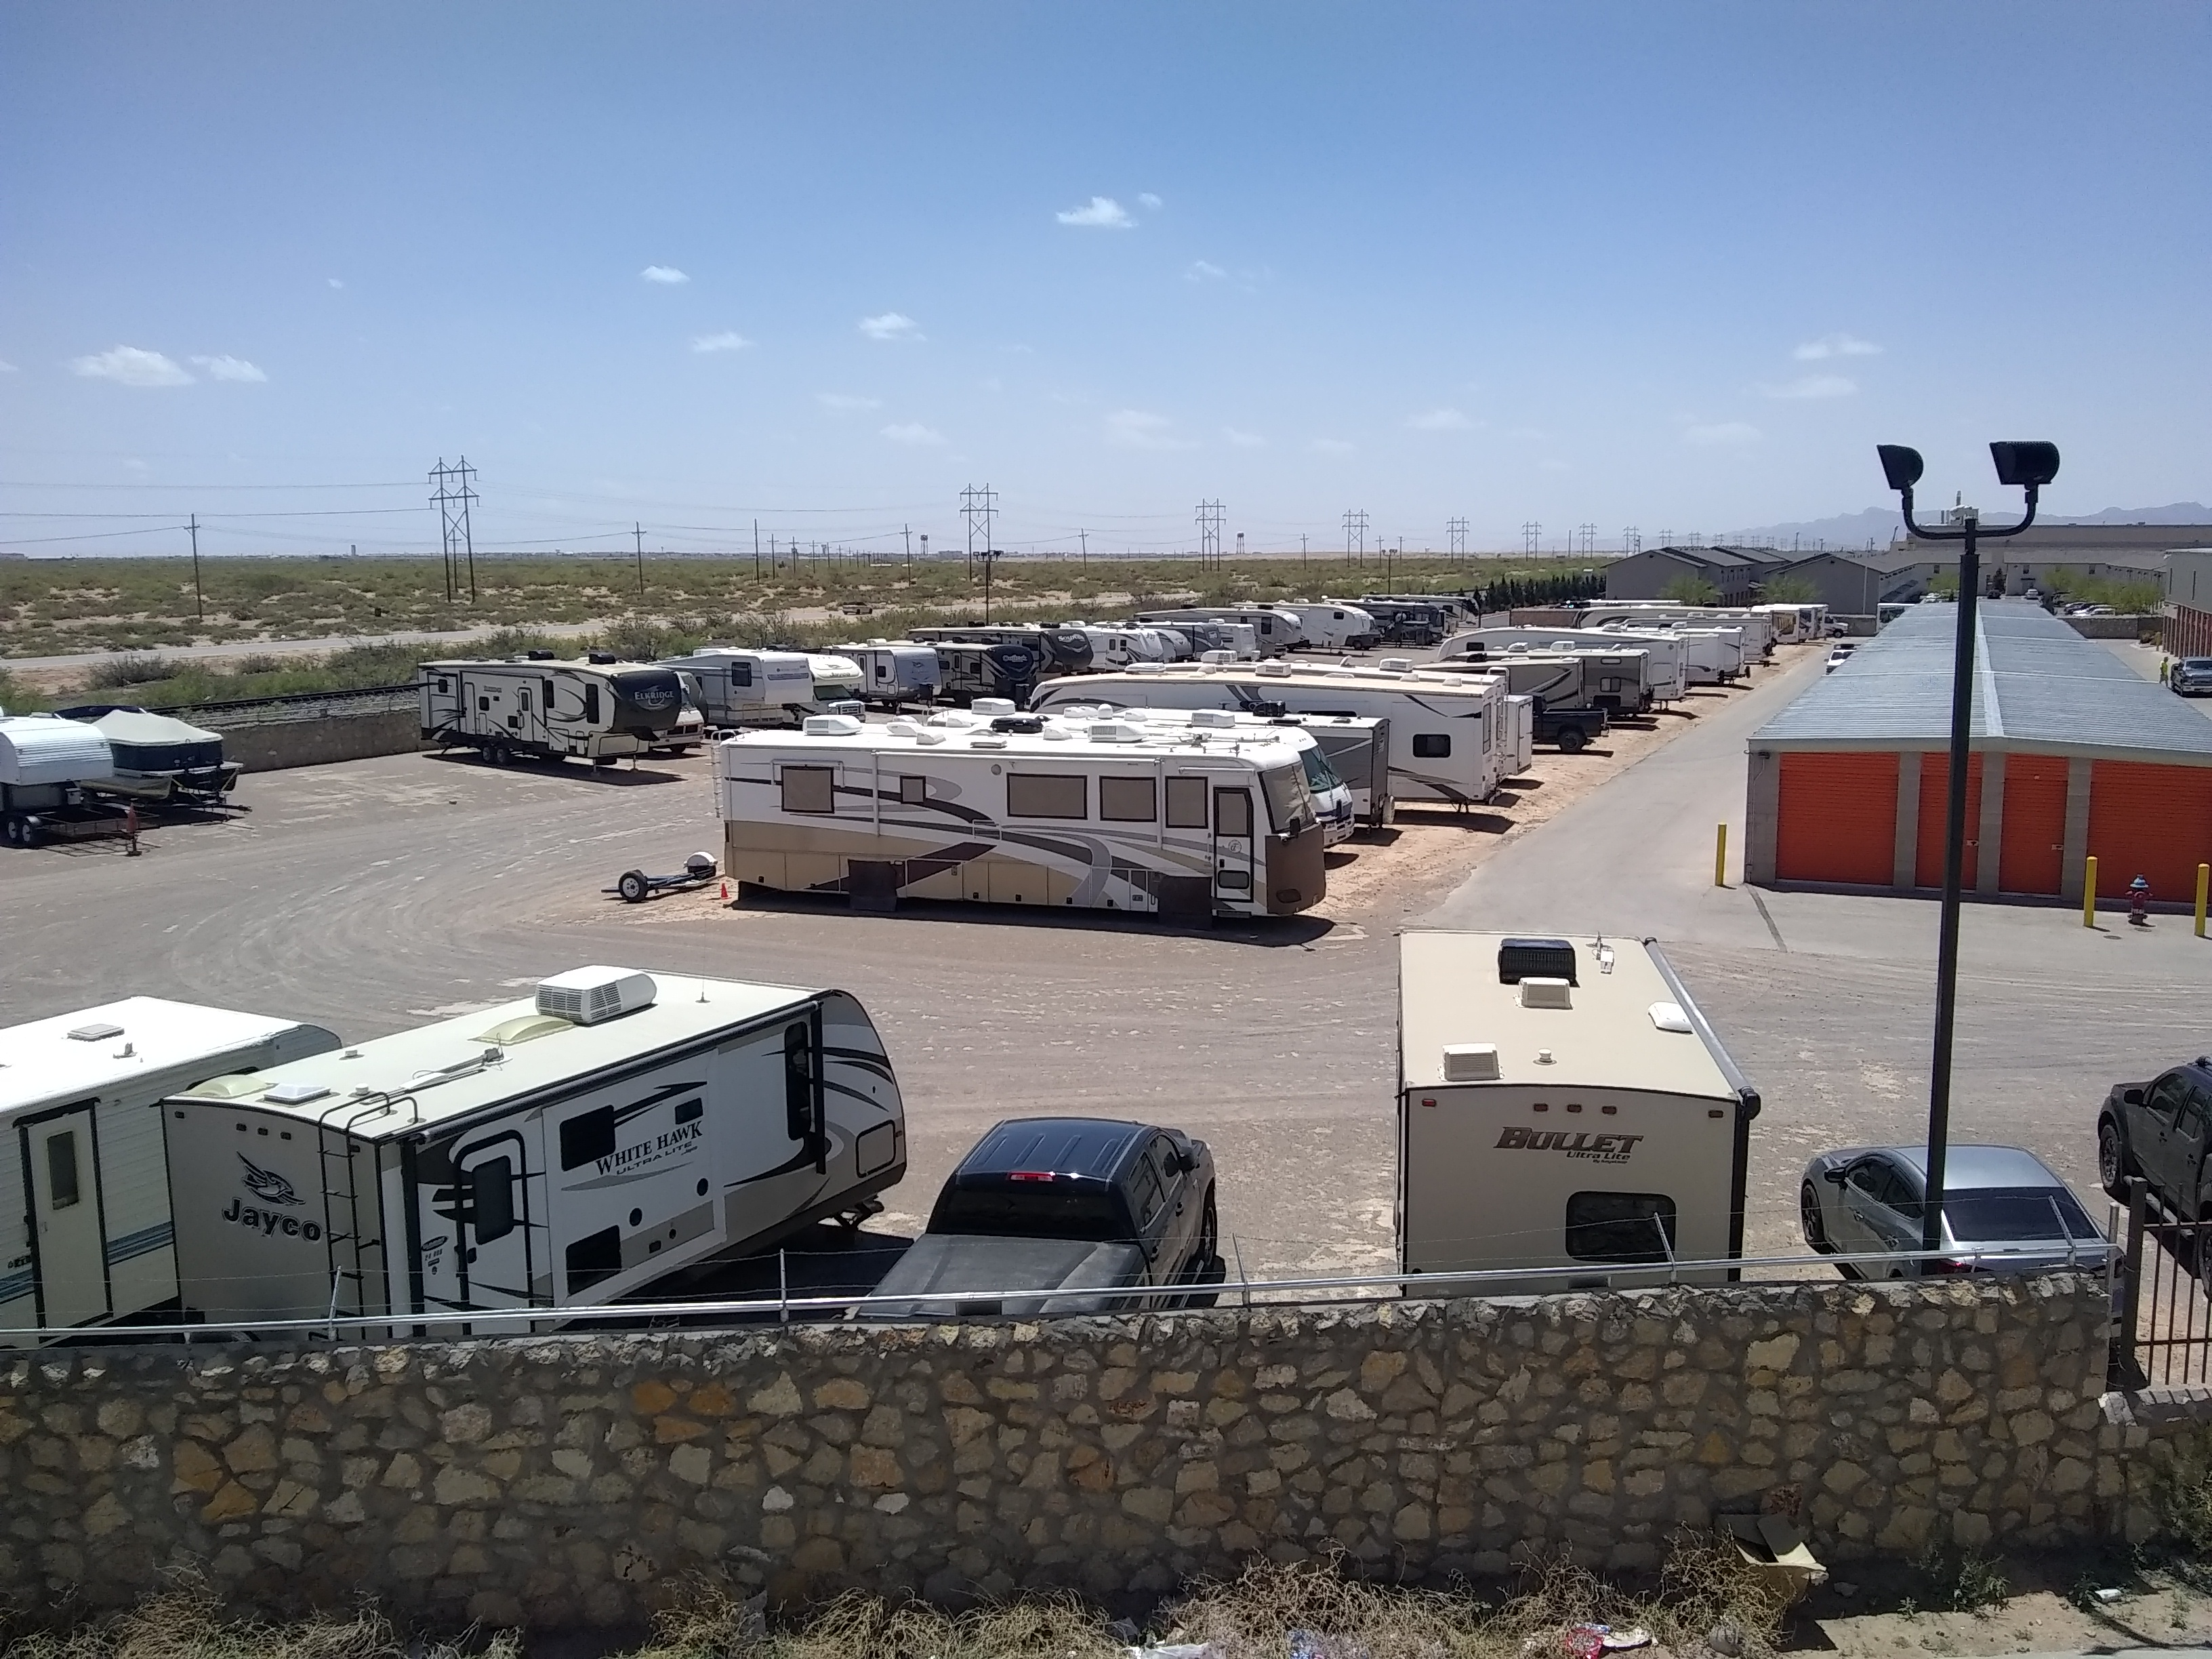 RV parking pic for website